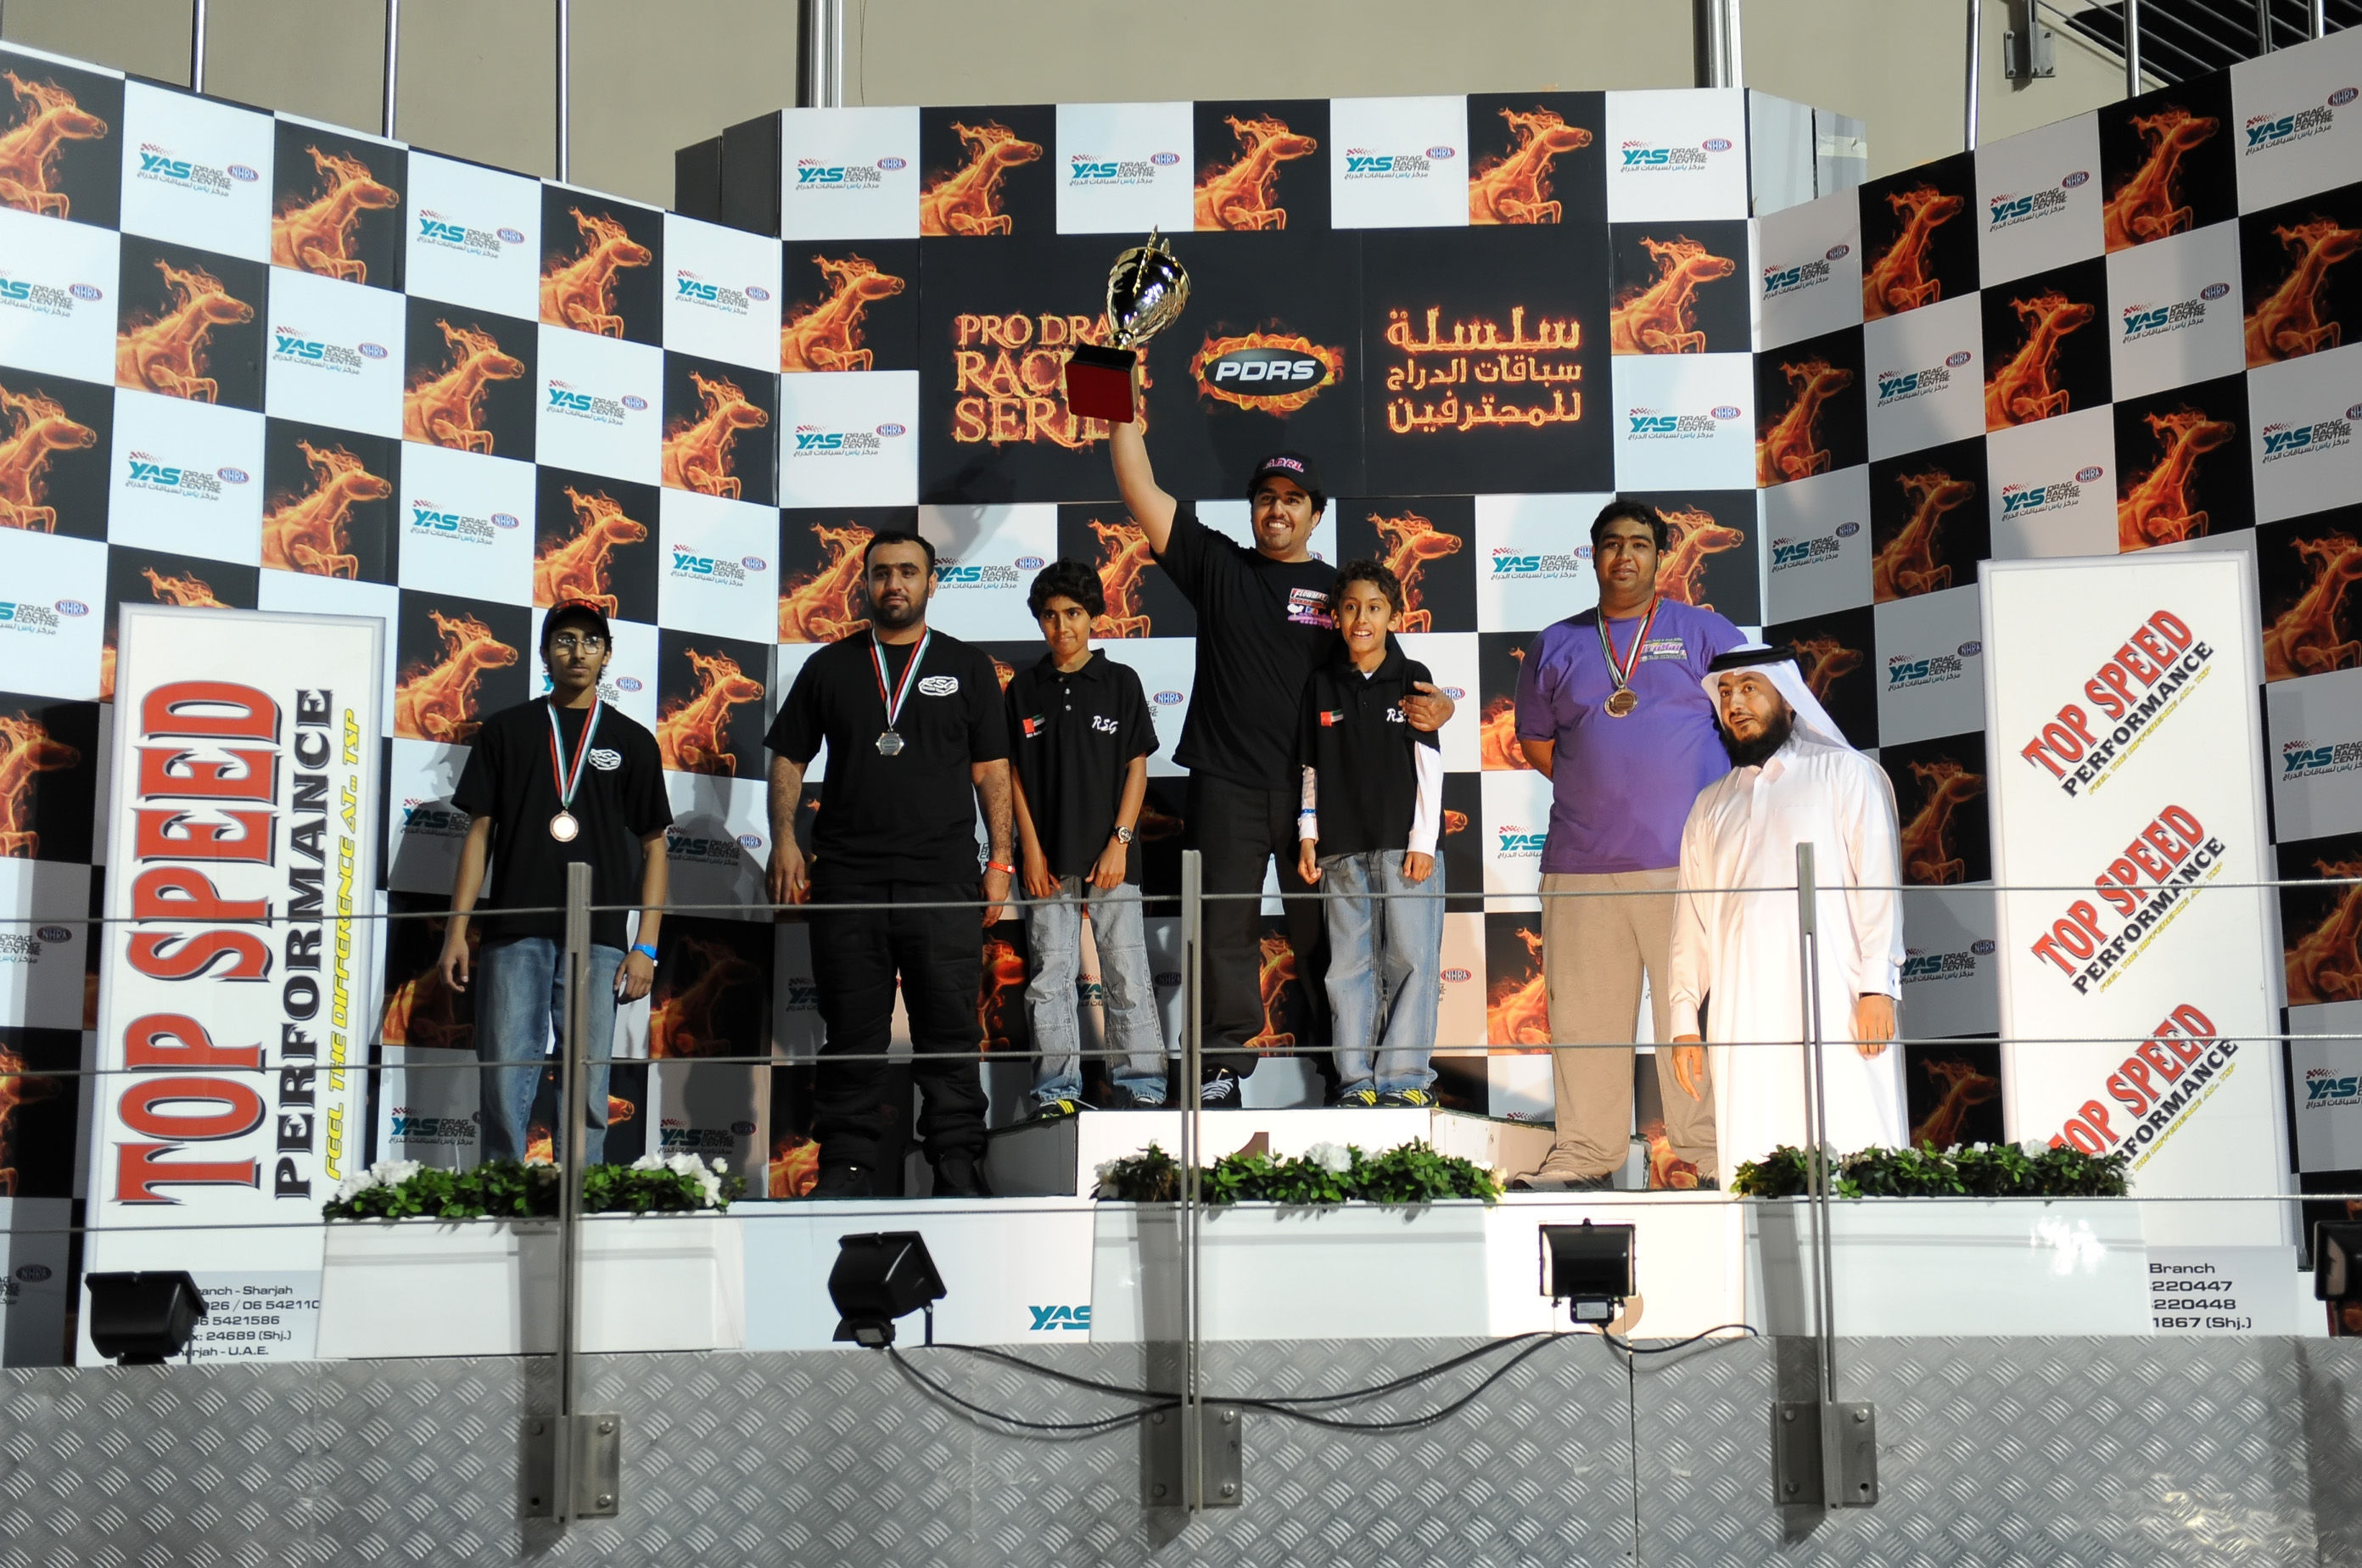 Drag Racing: Round One of the Pro series at Yas Marina brings big purse win for Al Kaabi in Pro Mod class